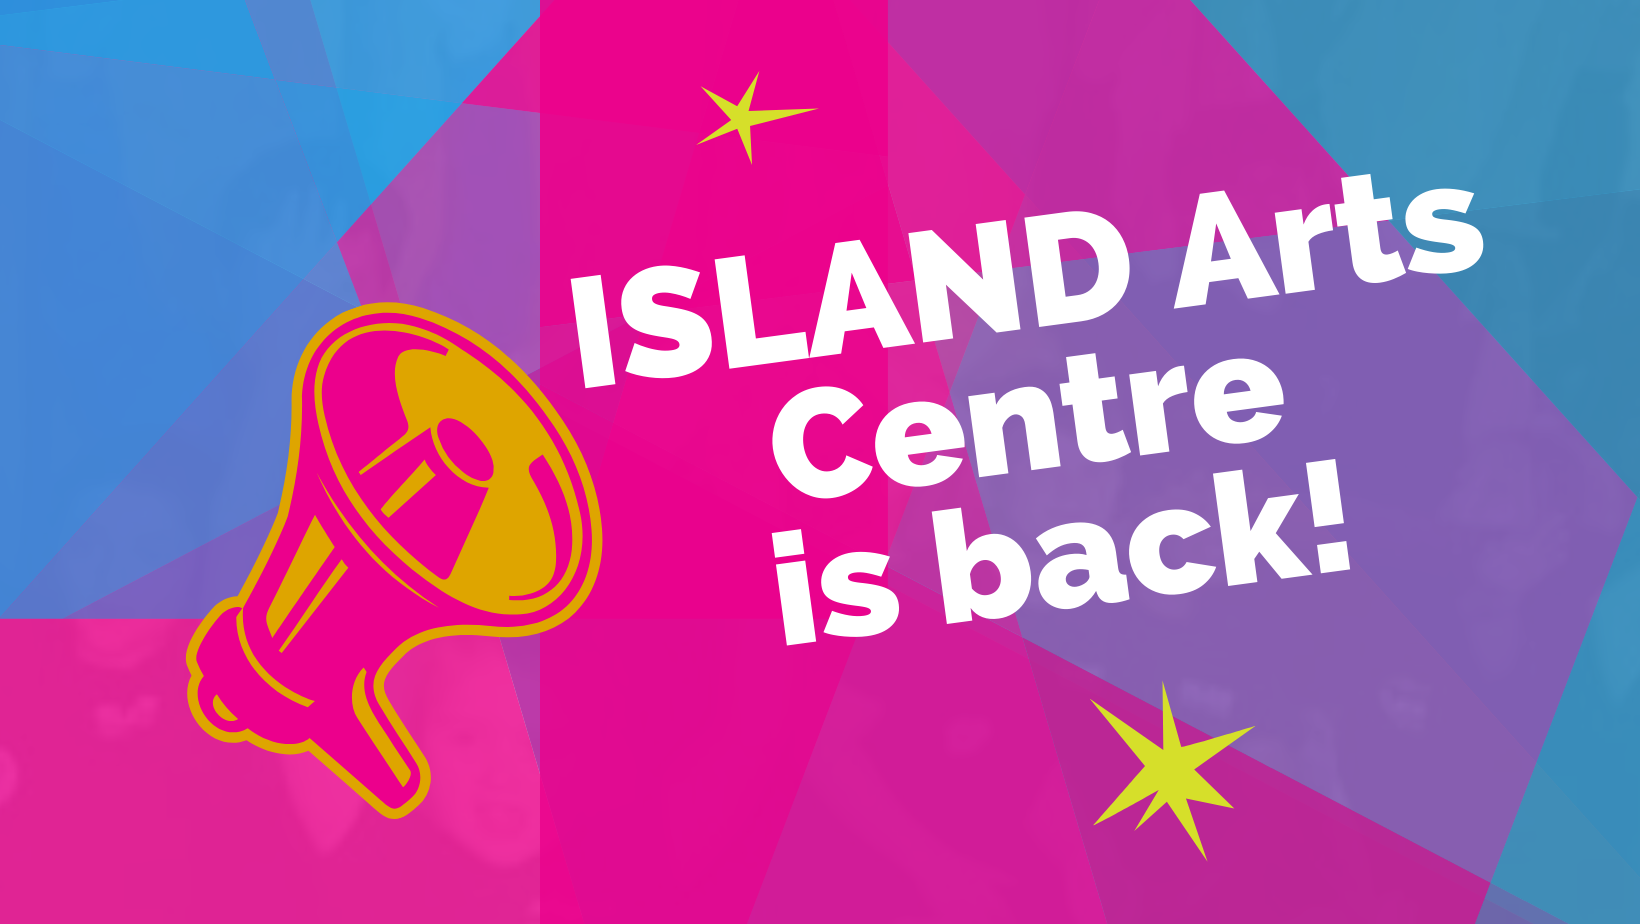 ISLAND Arts Centre is back and we're giving you a sneak preview of its Children's Arts Festival 2021